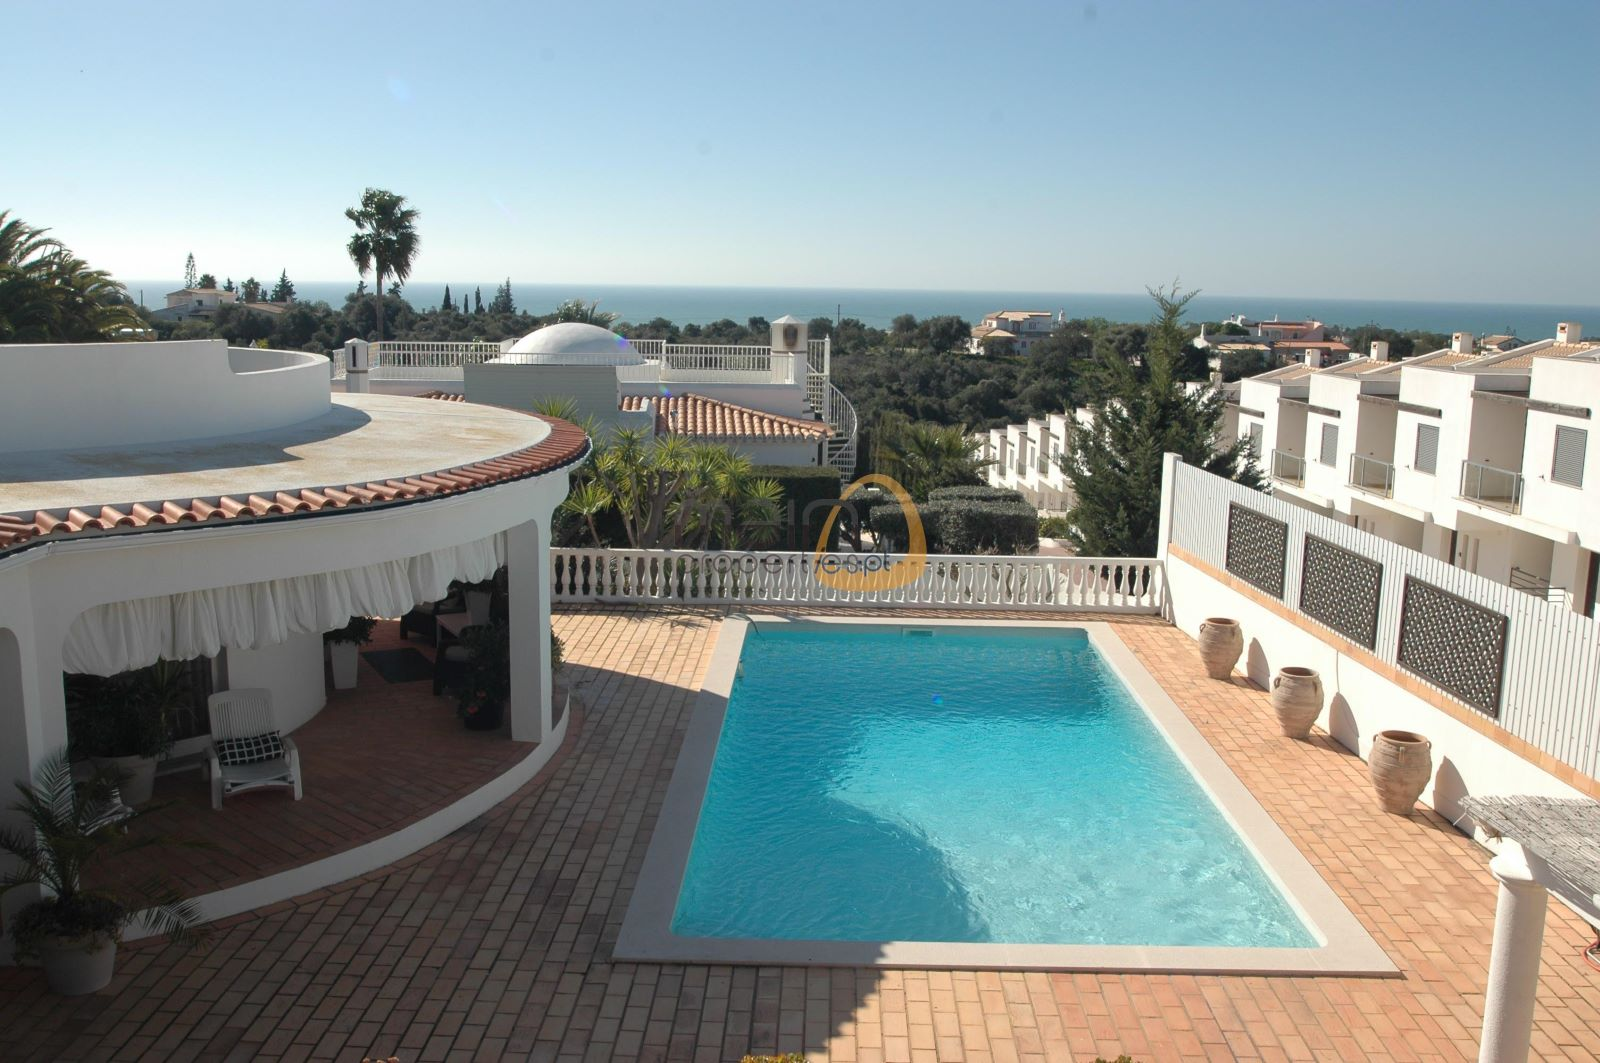 6 bedroom villa with sea view in Albufeira